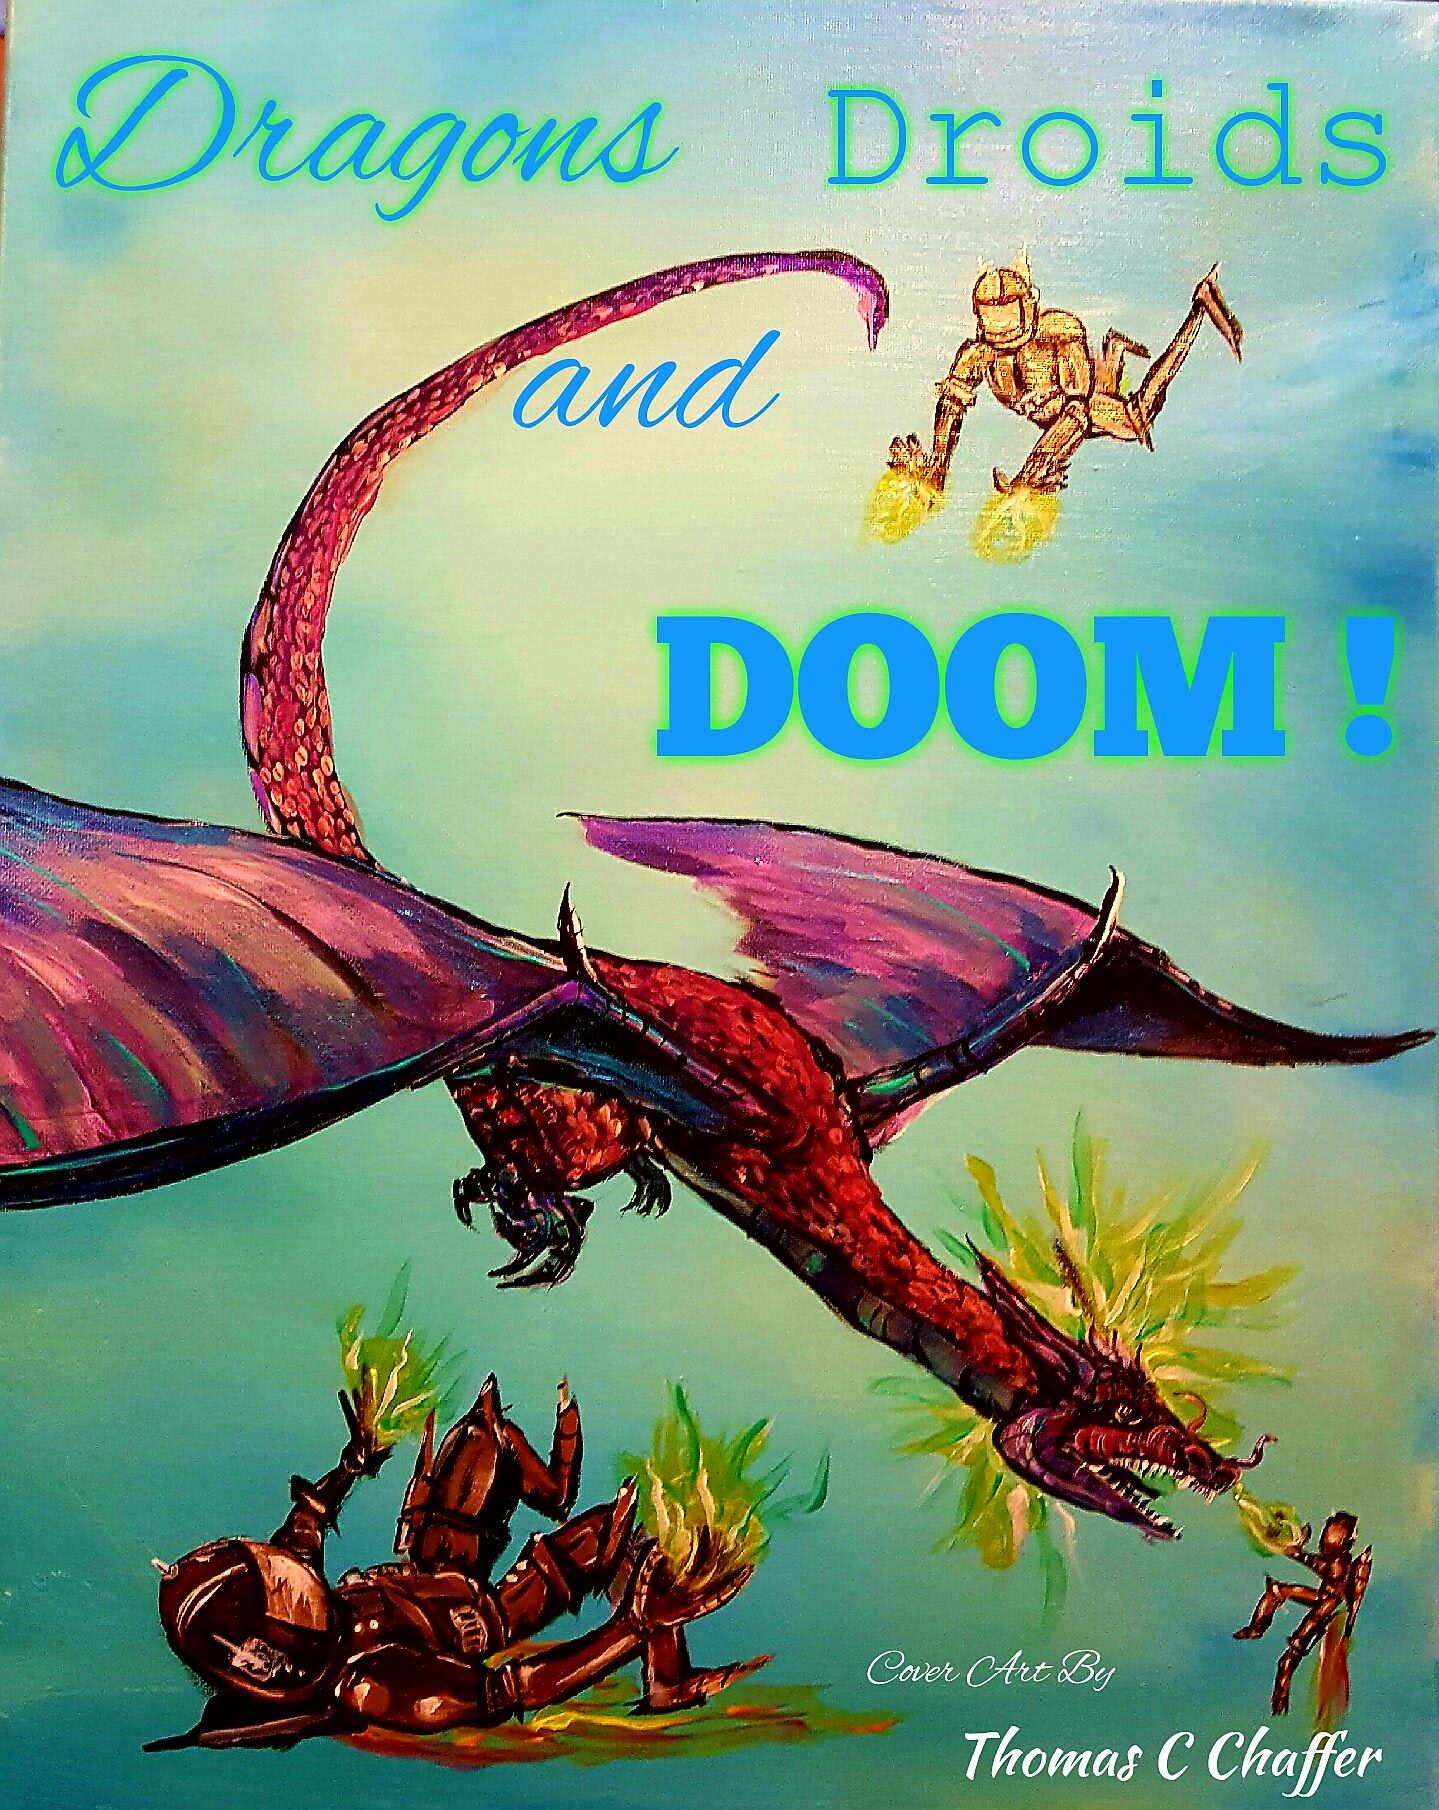 Dragons, Driods, And Doom